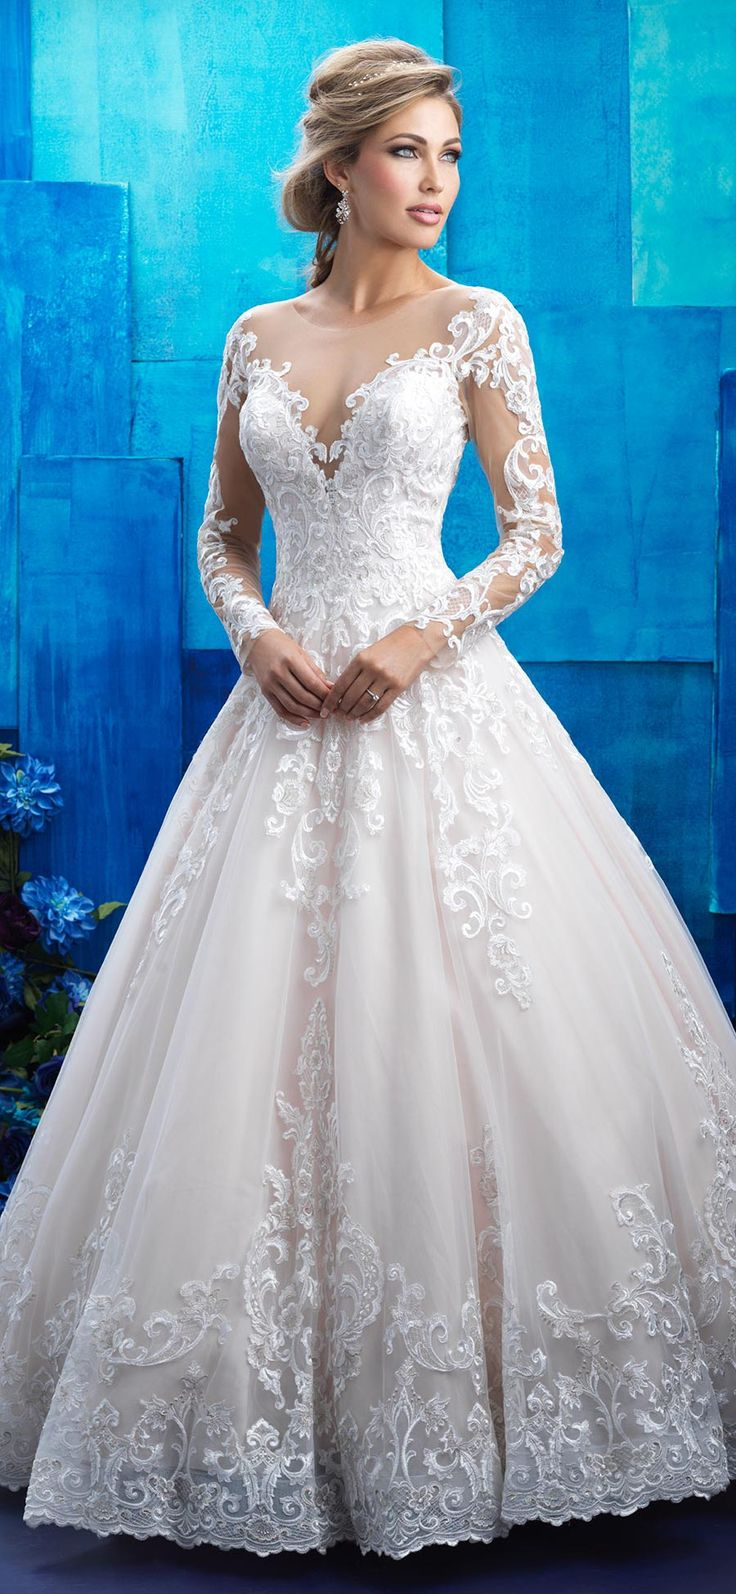 Unique Visit Lovia Bridal Boutique for the best selection of of designer wedding gowns in the Cheshire